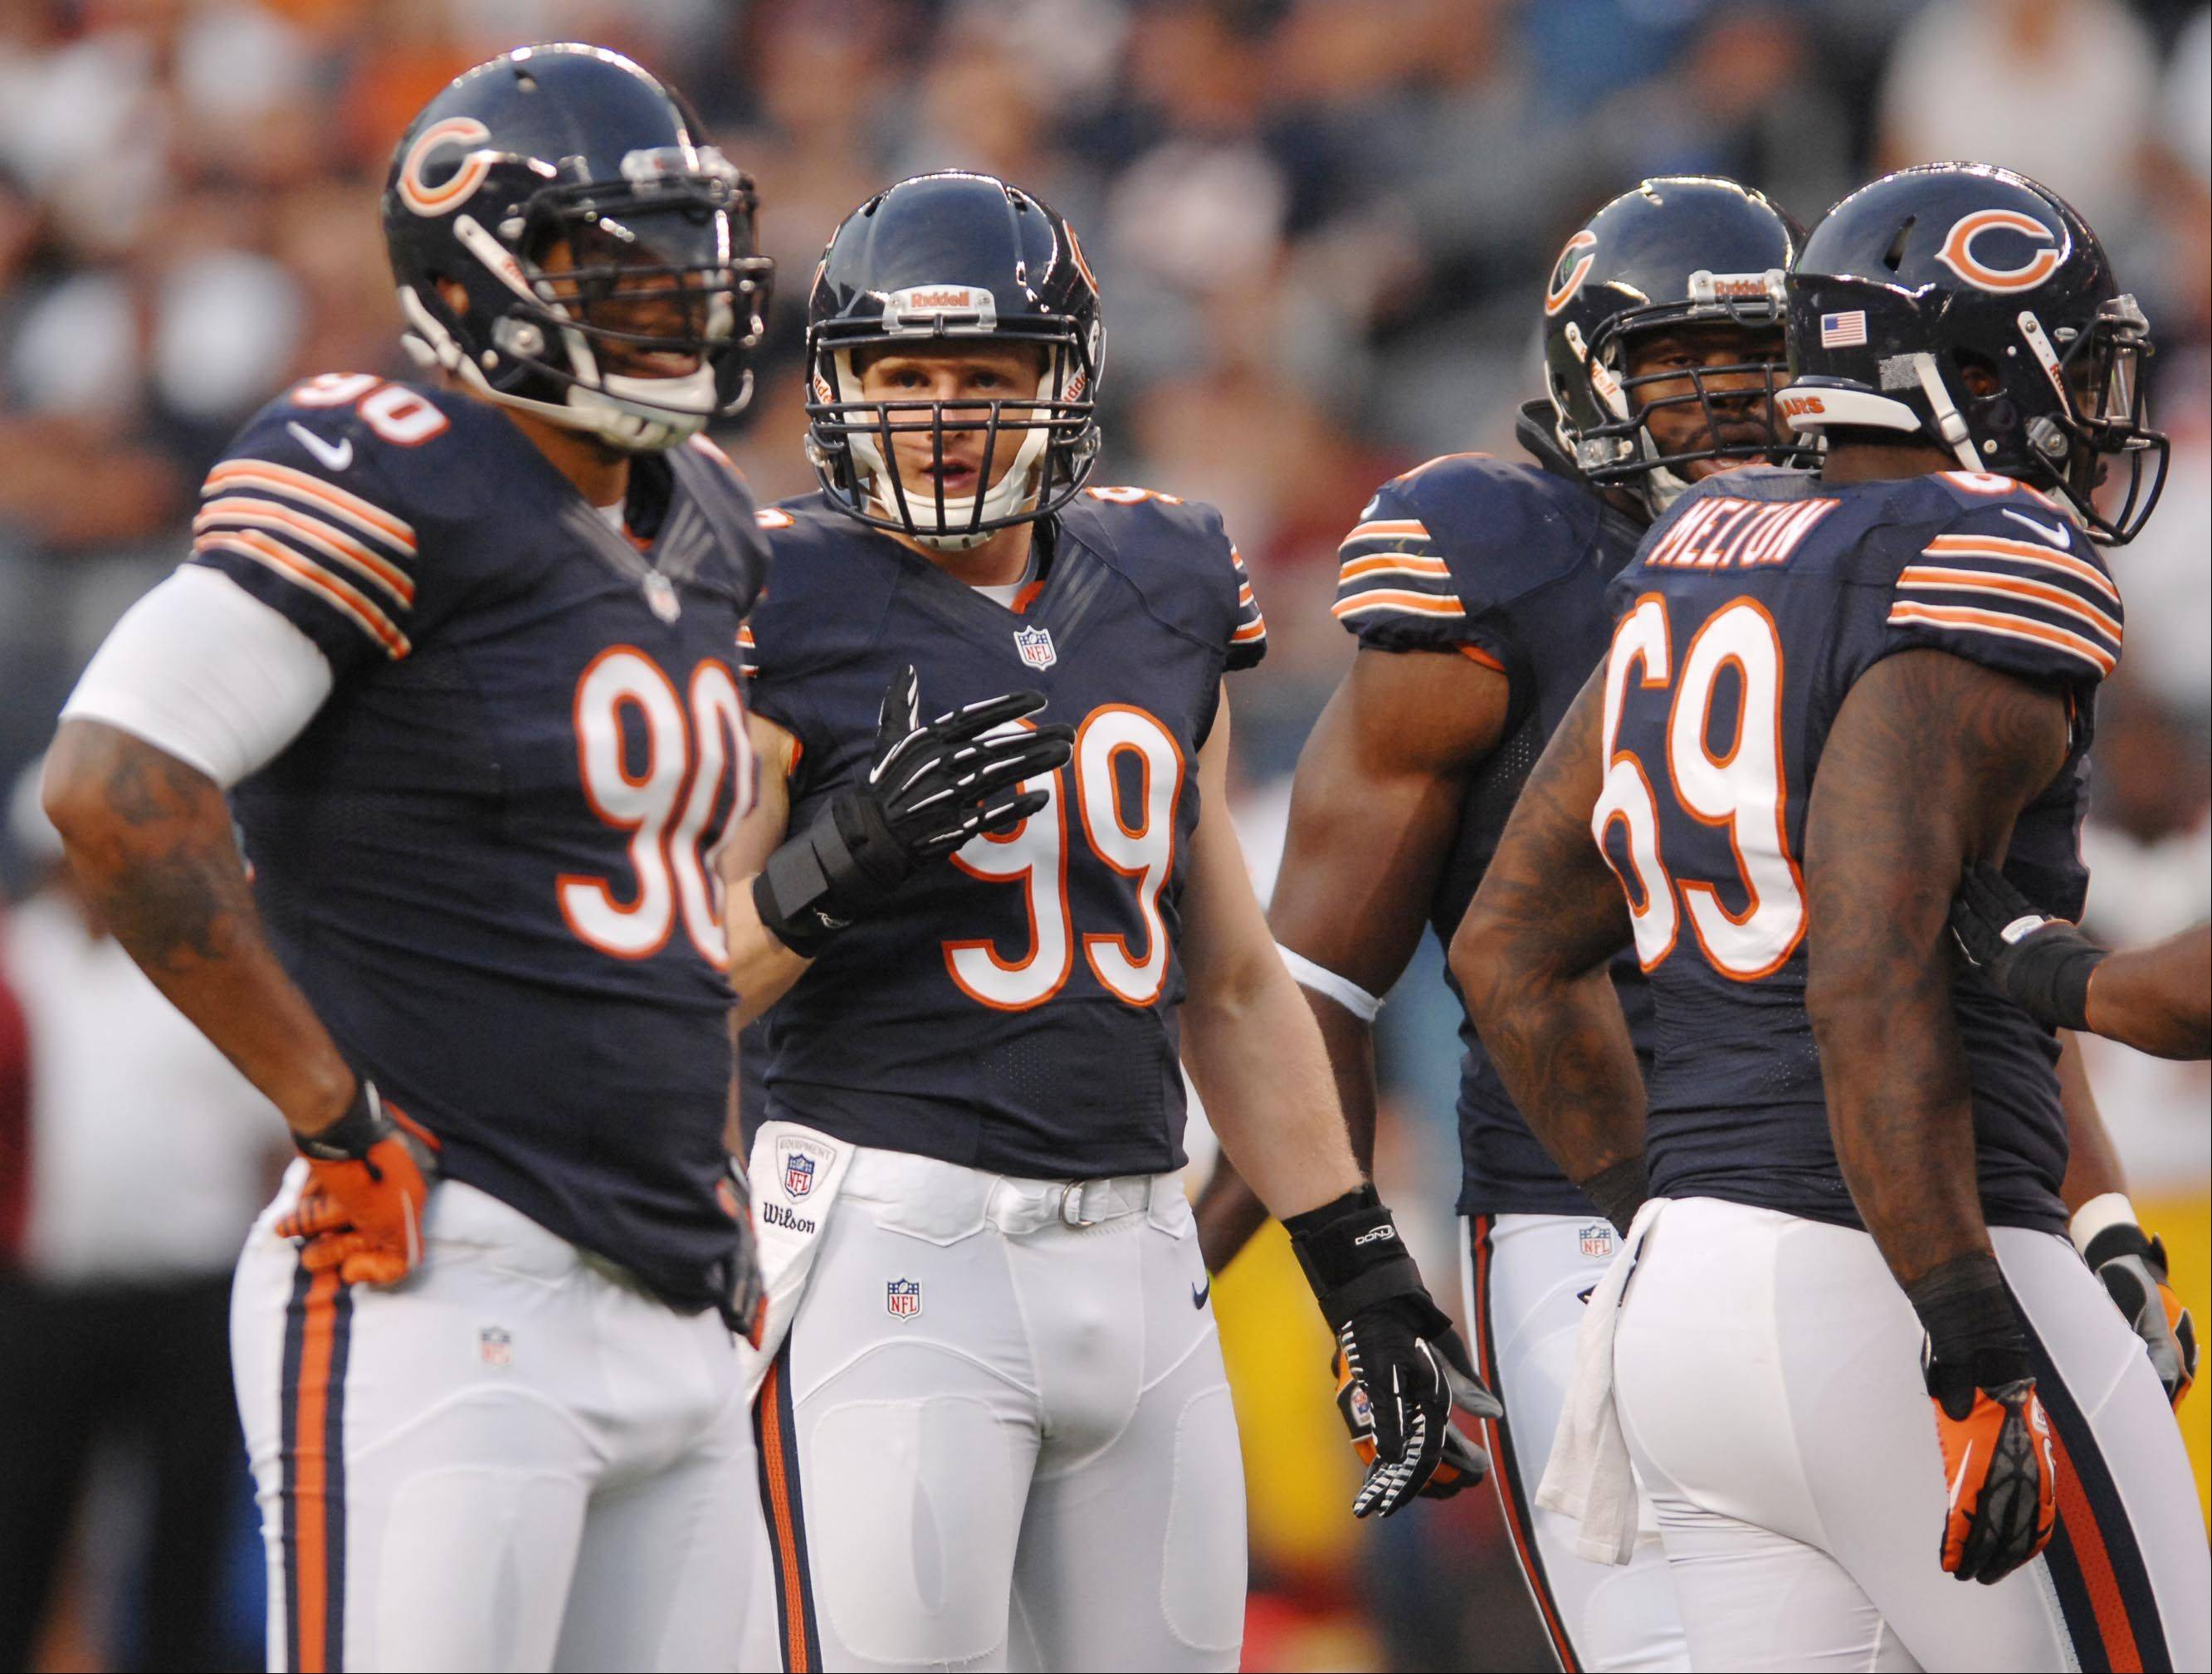 Bears defensive end Shea McClellin gets some advice from all-pro standout Julius Peppers.